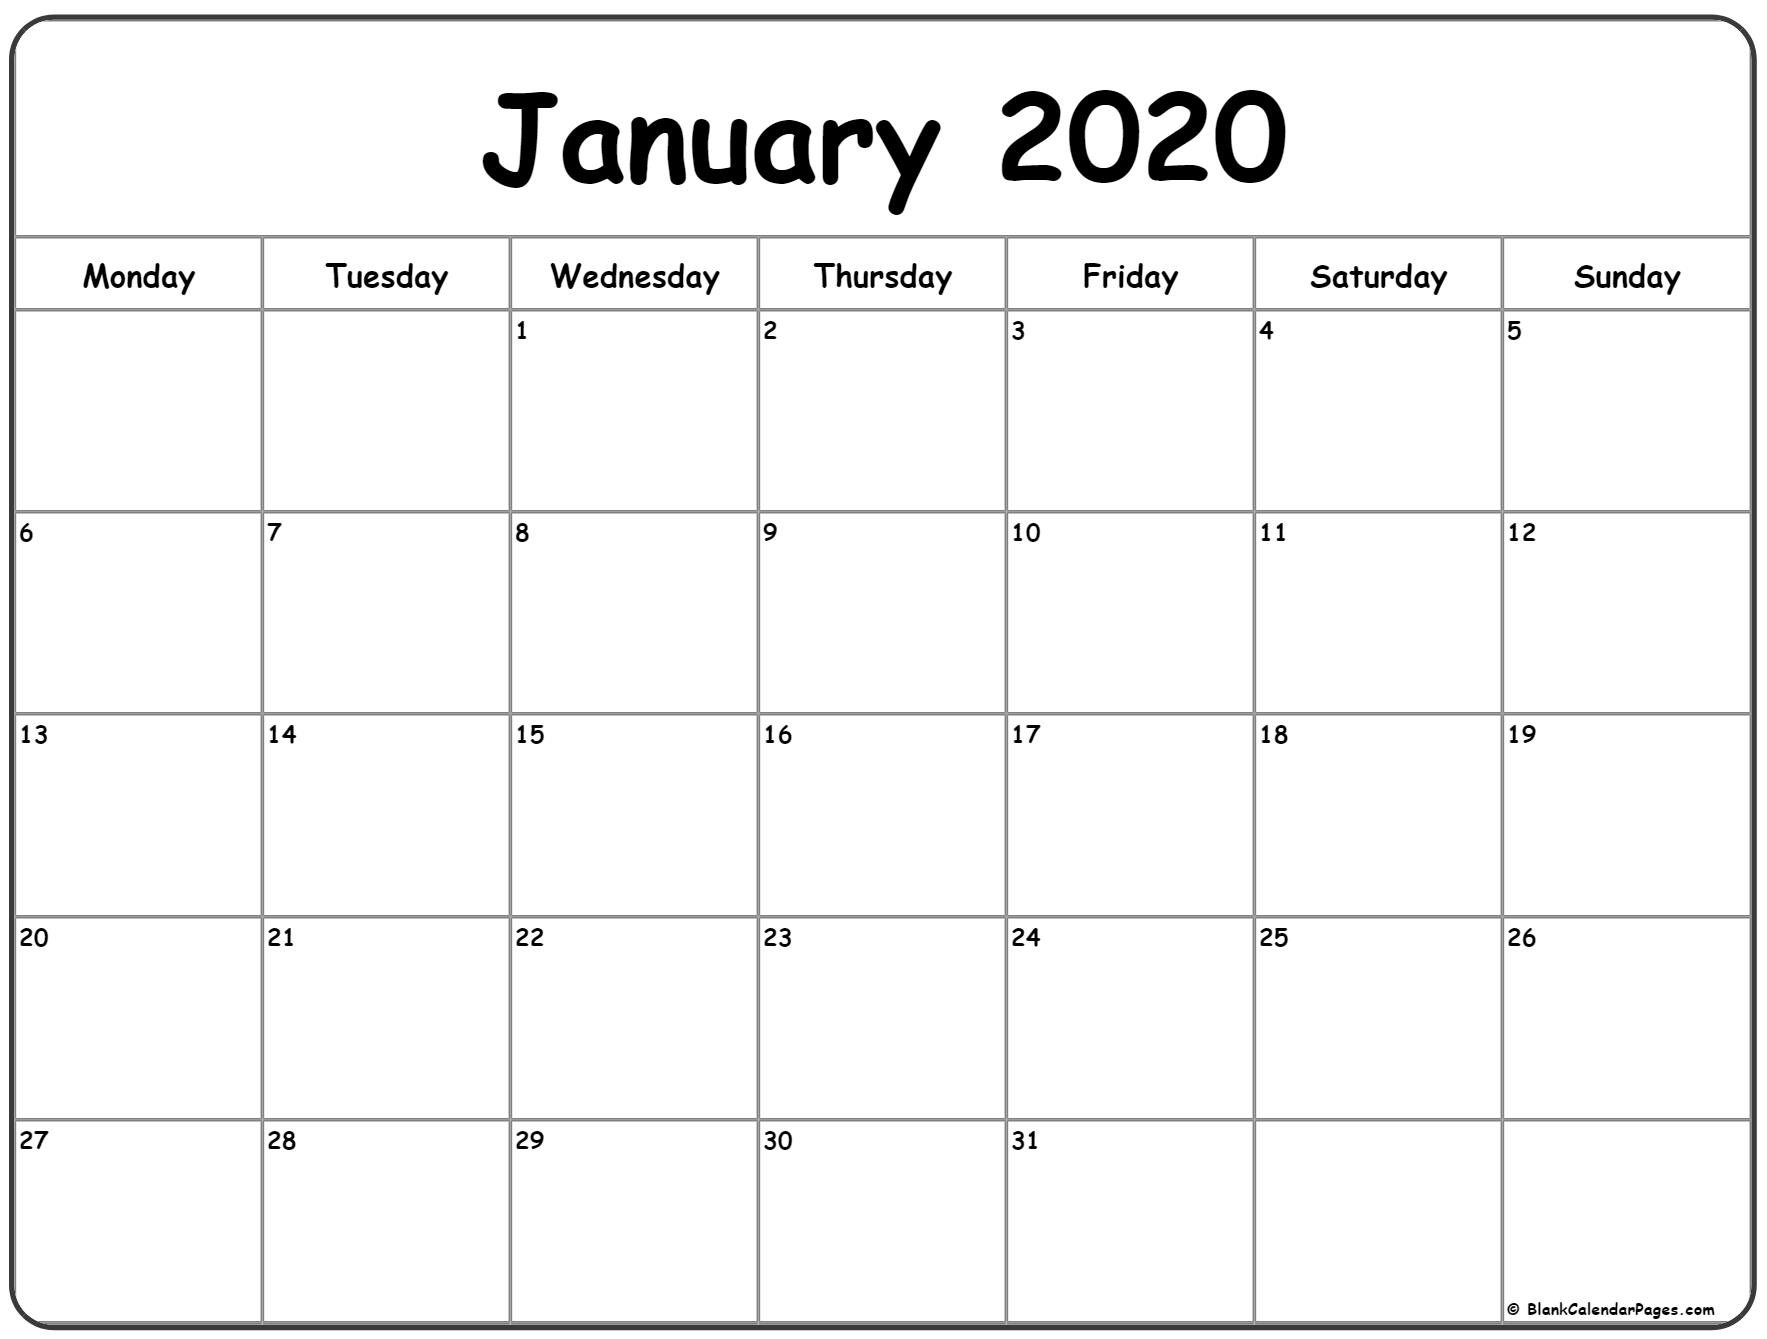 January 2020 Monday Calendar | Monday To Sunday with regard to 2020 Calendar Monday To Sunday